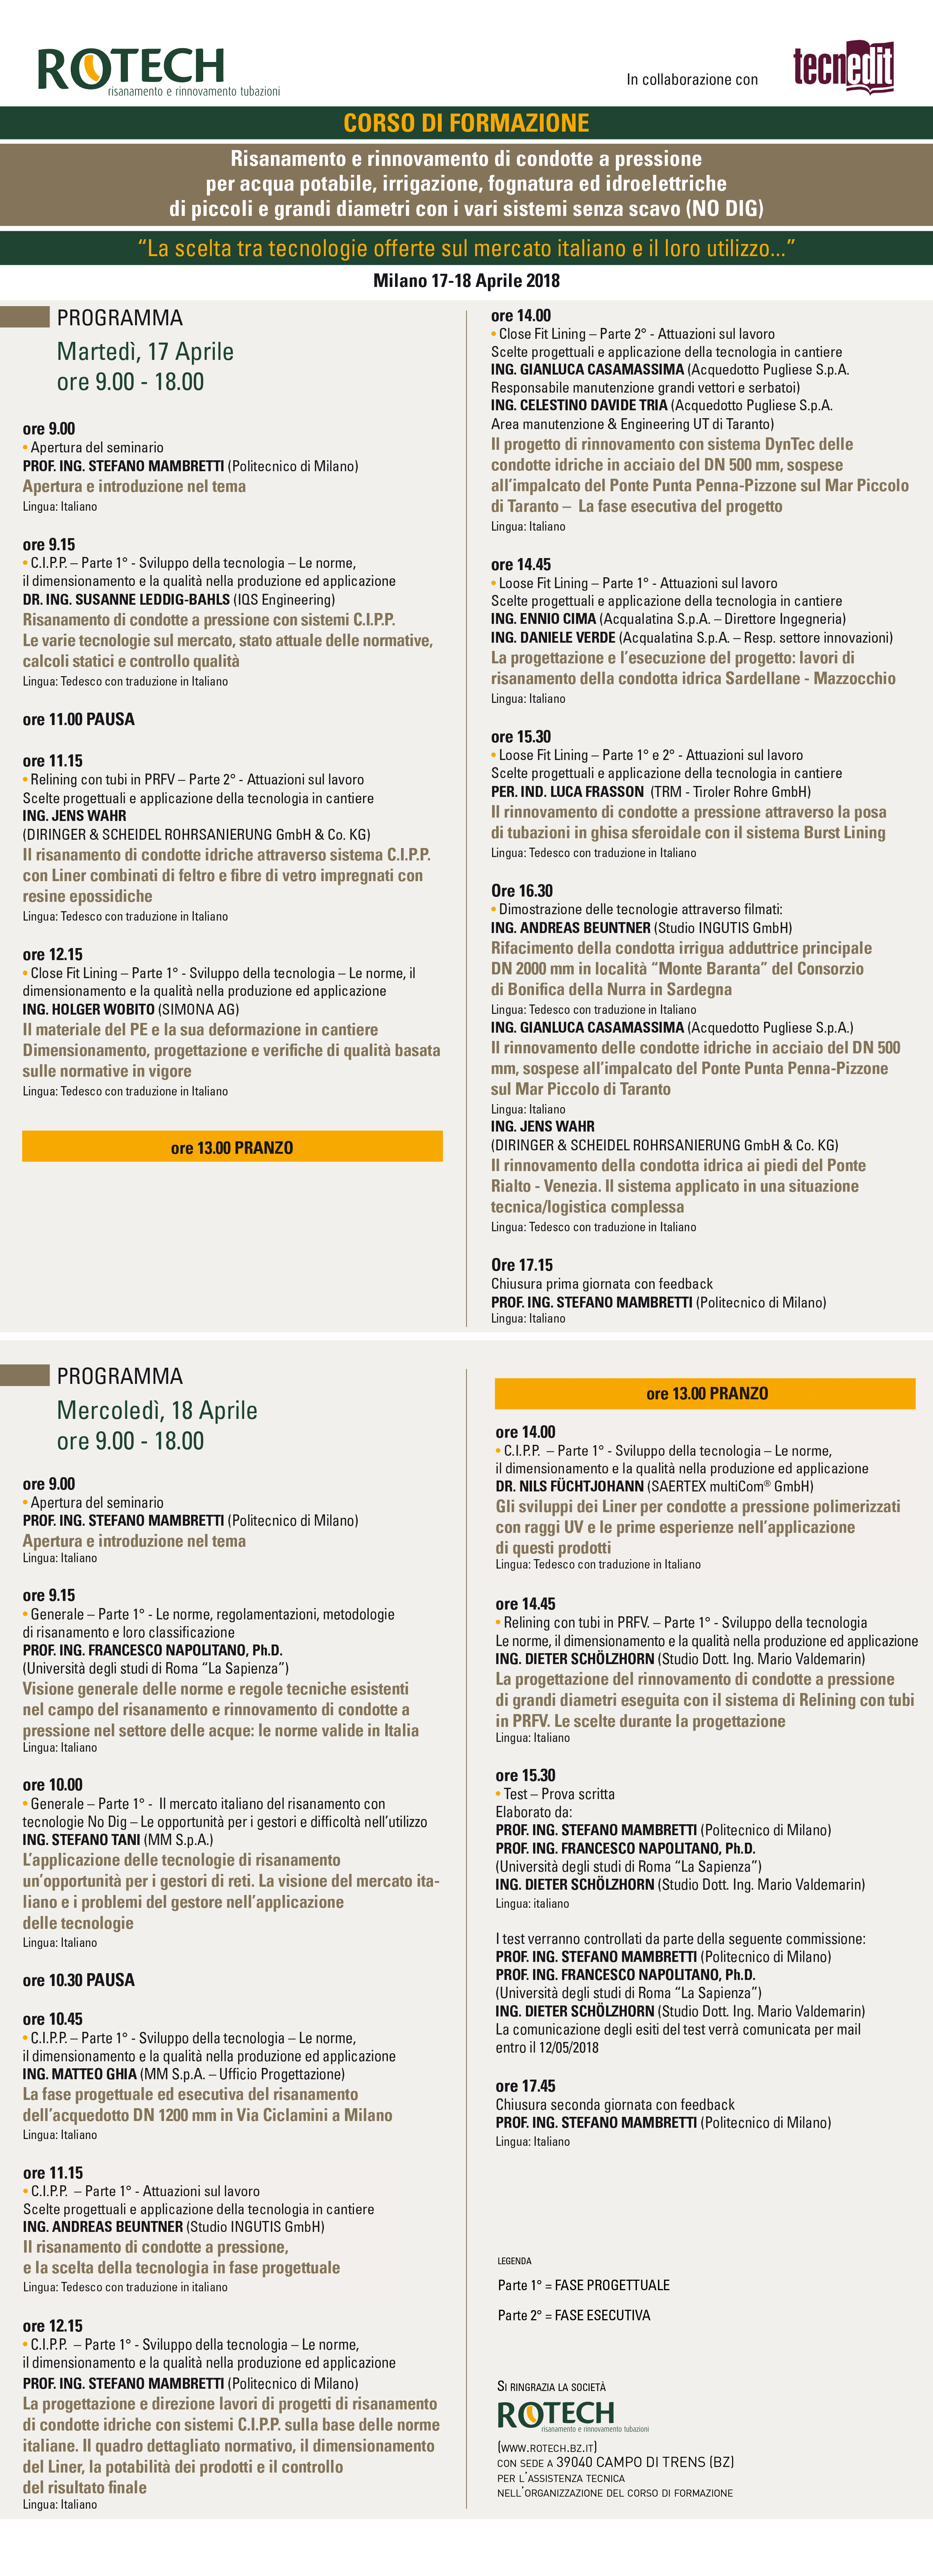 A4 rotech programma 2018.indd